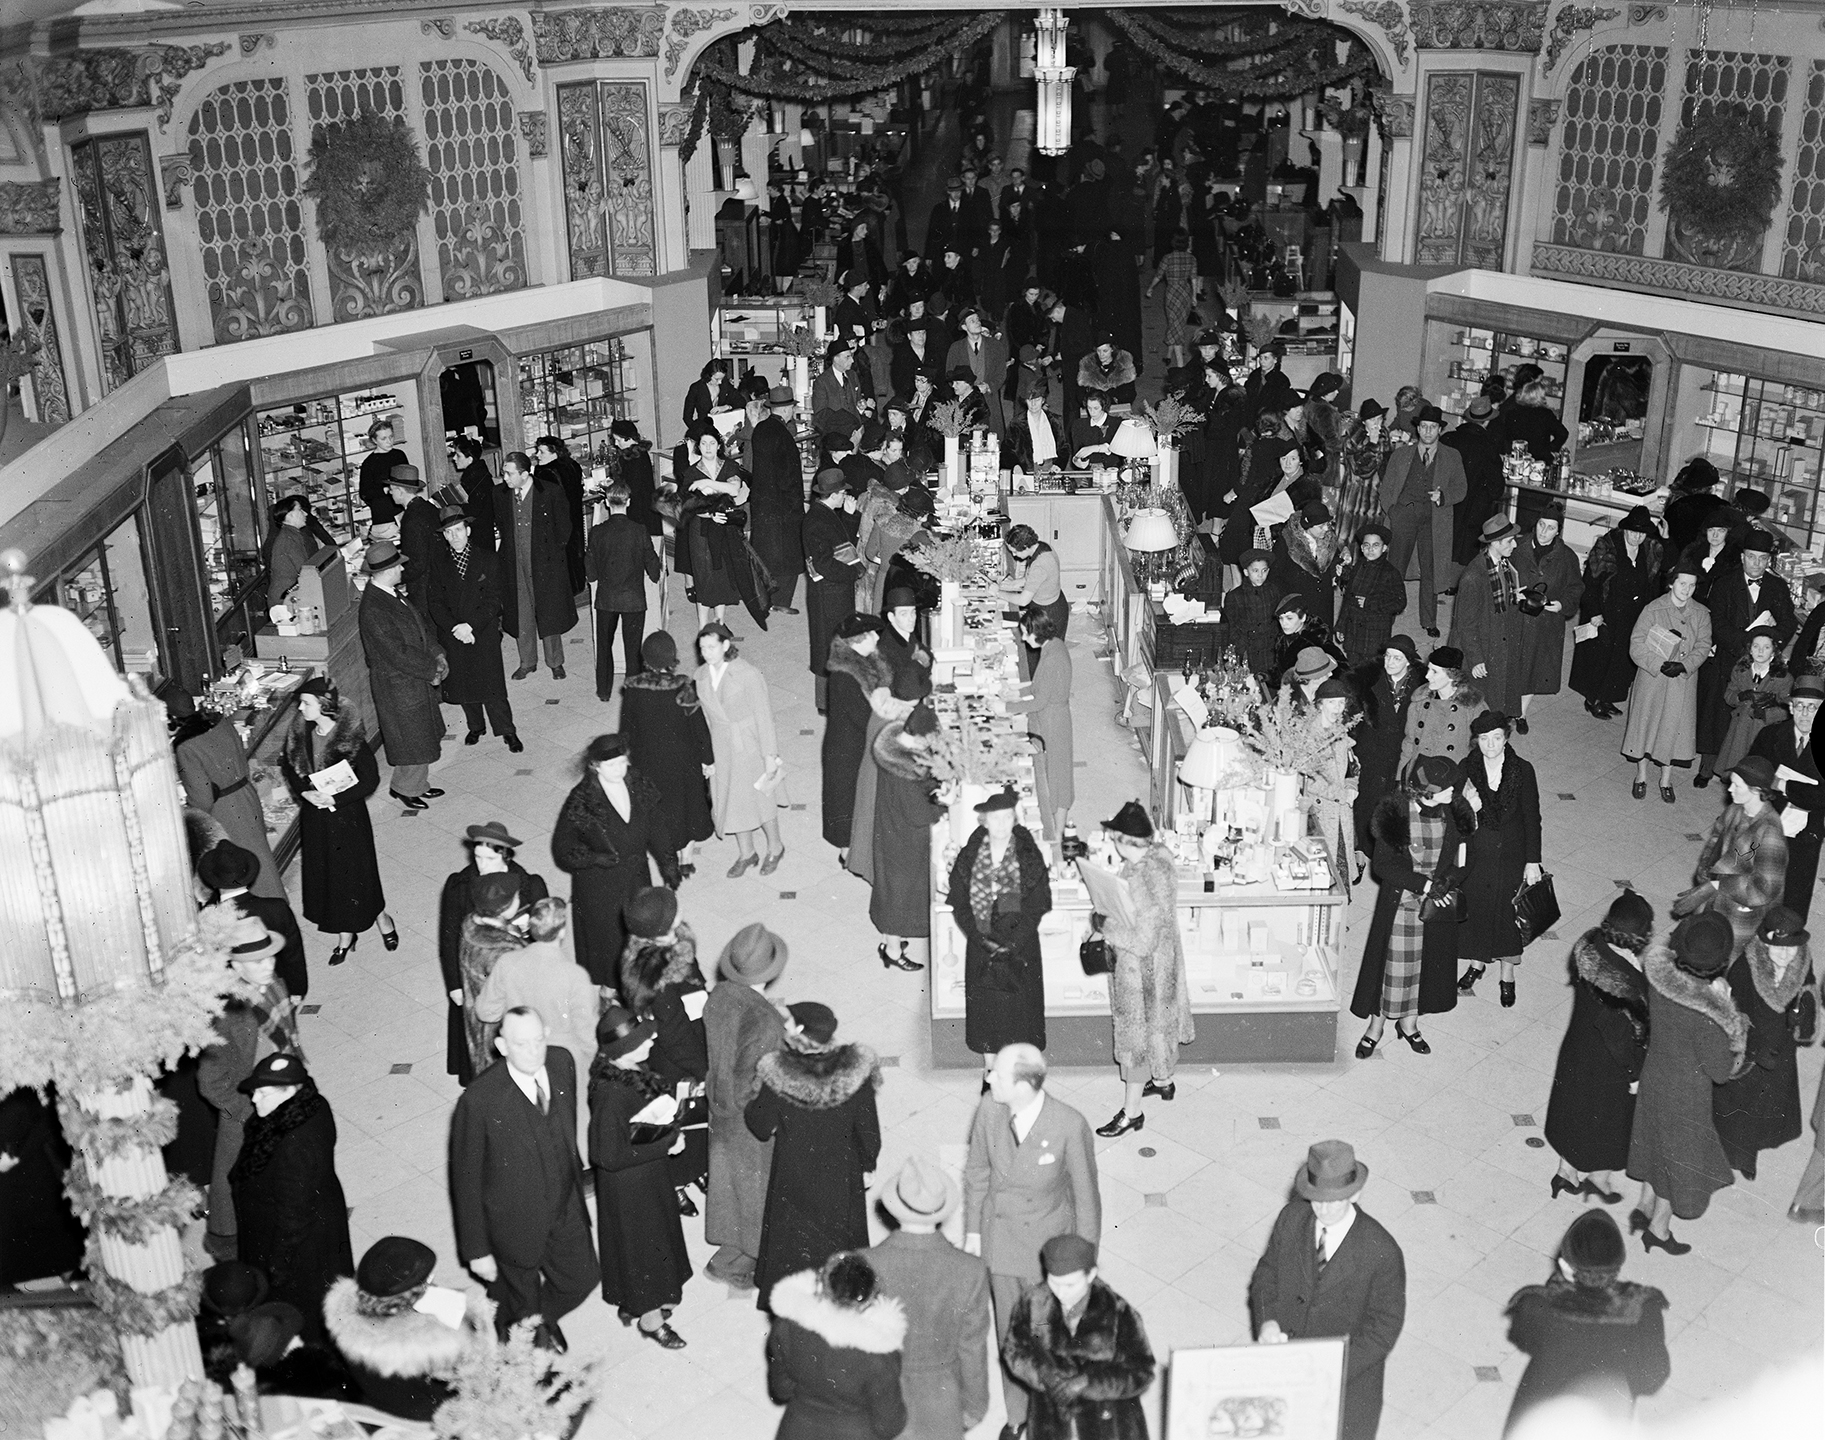 Christmas shopping at Wanamaker's Department Store, Broadway at 9th Street, ca. 1937.WPA Federal Writers' Project Collection, NYC Municipal Archives.